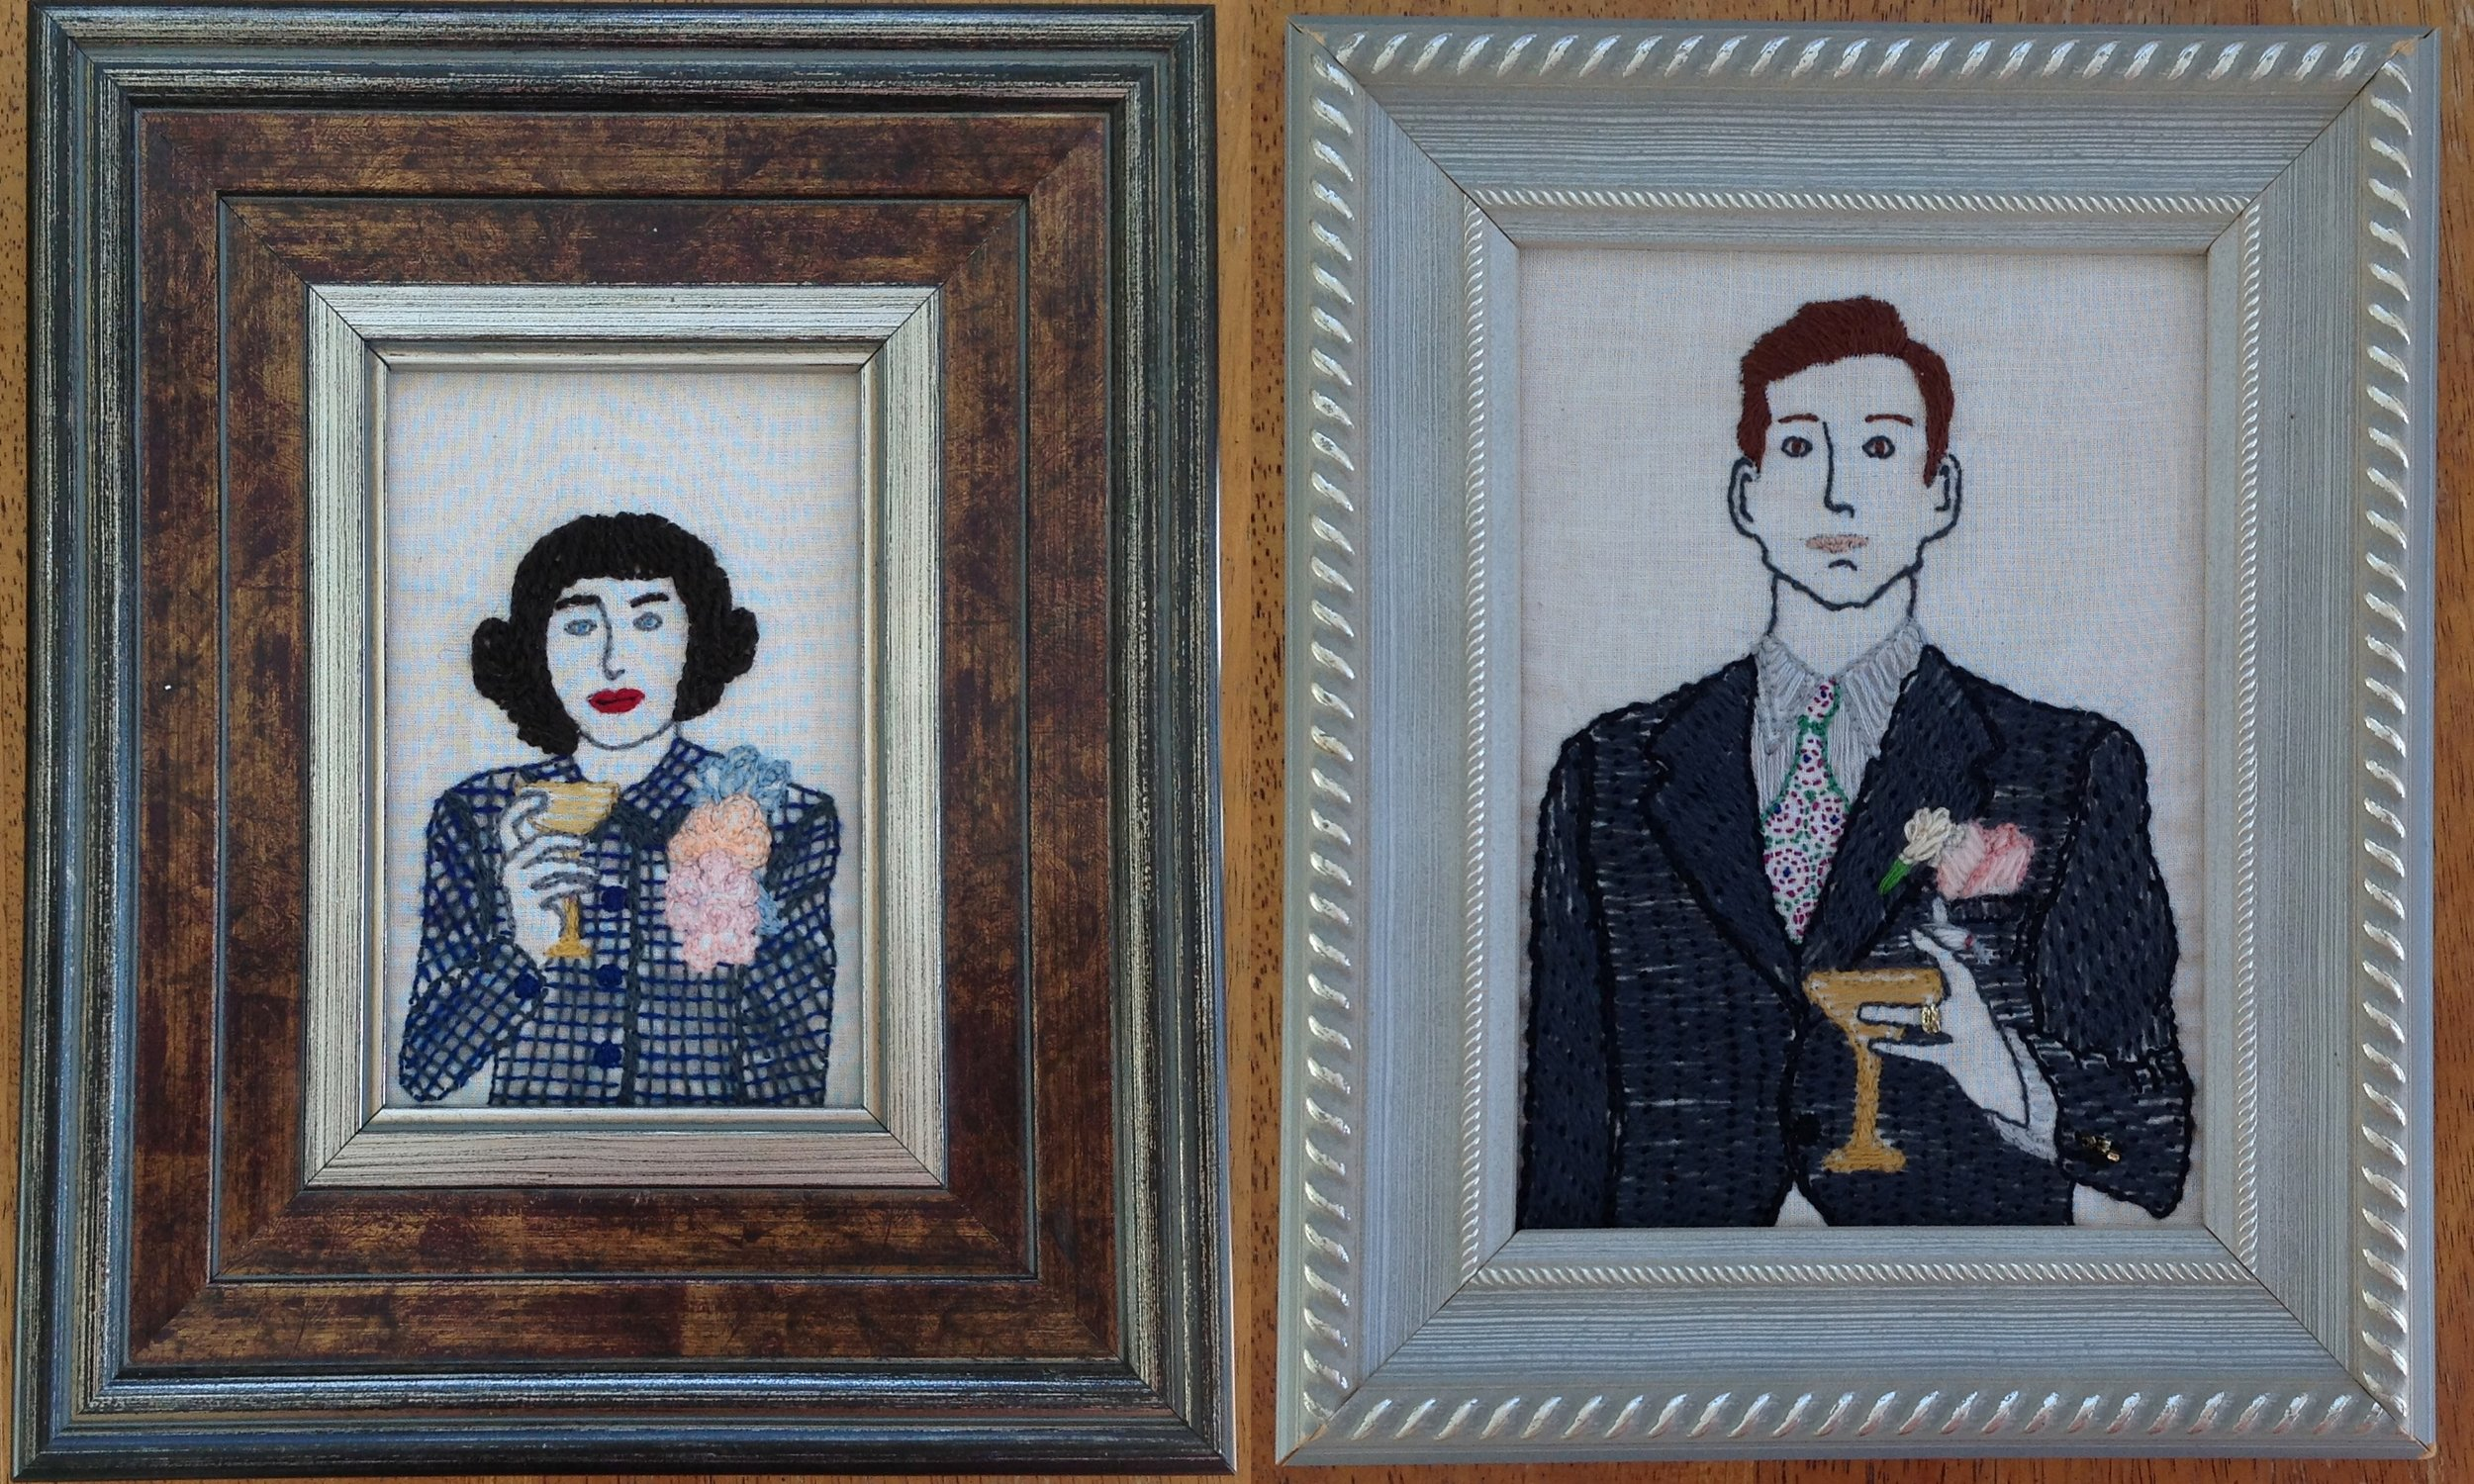 My embroidered interpretation of my parents' wedding photo, 2012